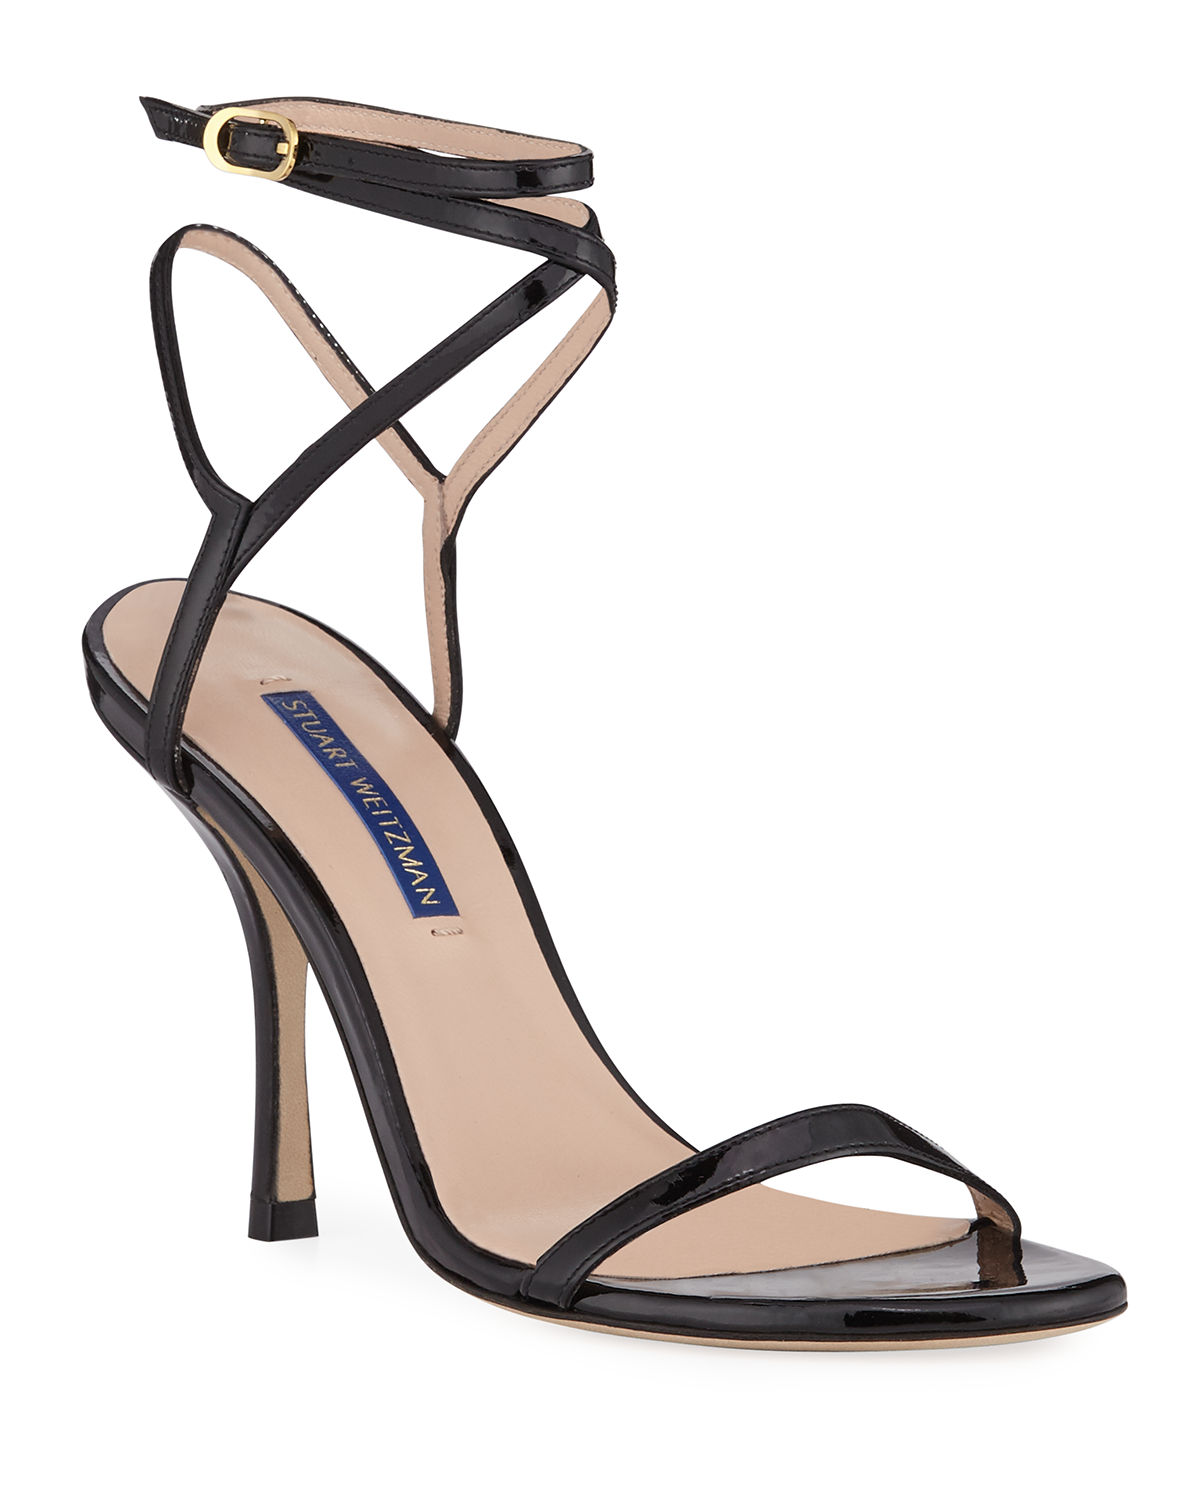 Stuart Weitzman Merinda Strappy Patent Ankle-wrap Sandals In Black